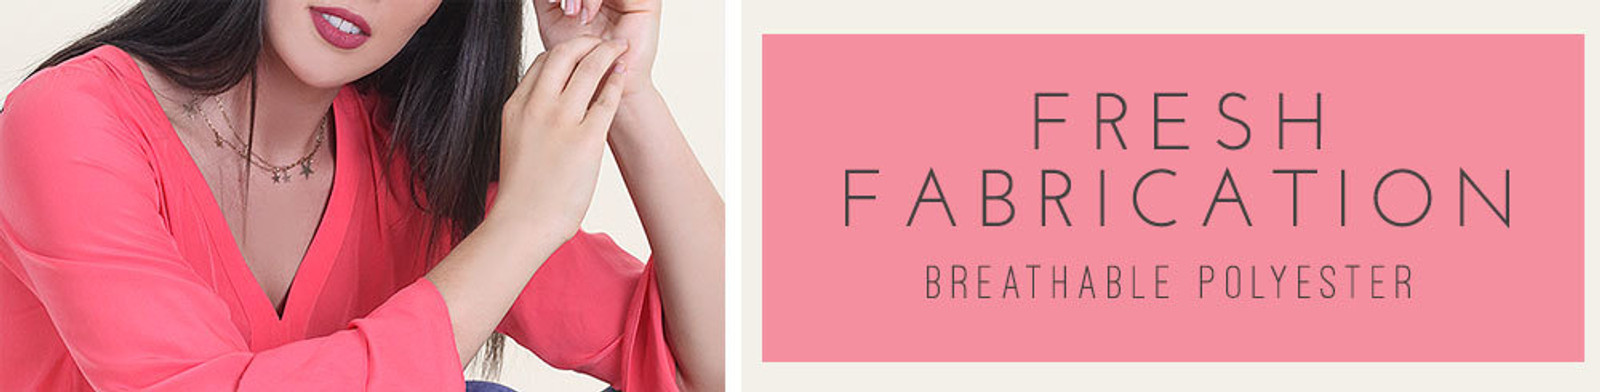 Fresh Fabrication | Breathable Polyester